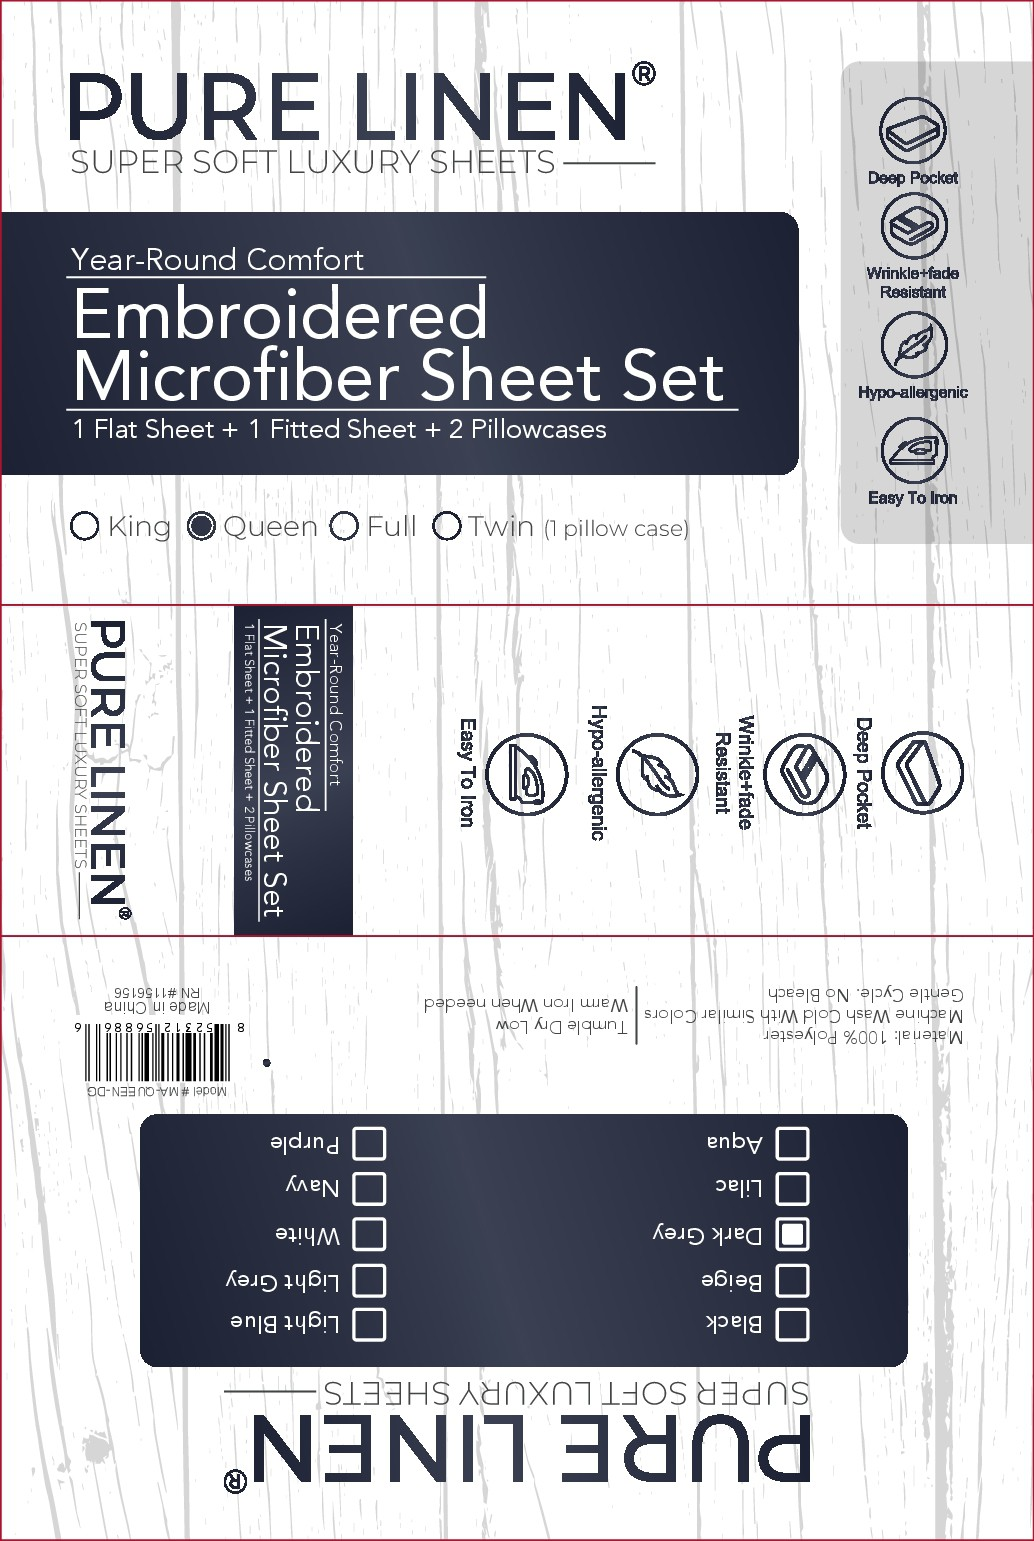 Pure Linen Bed Sheets Design Layout